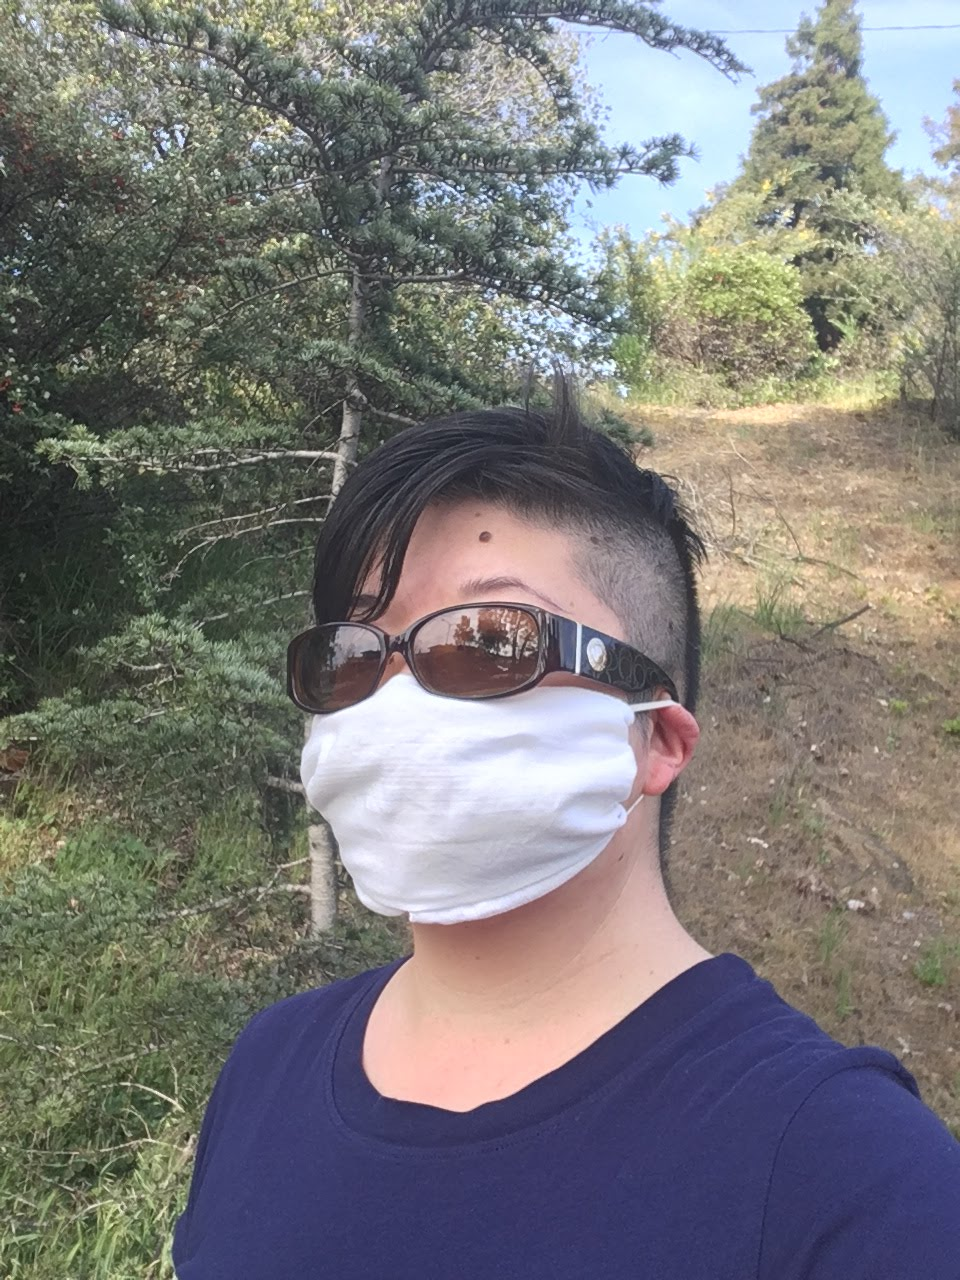 Short-haired Asian woman wearing sunglasses and a face mask improvised from a white hankie